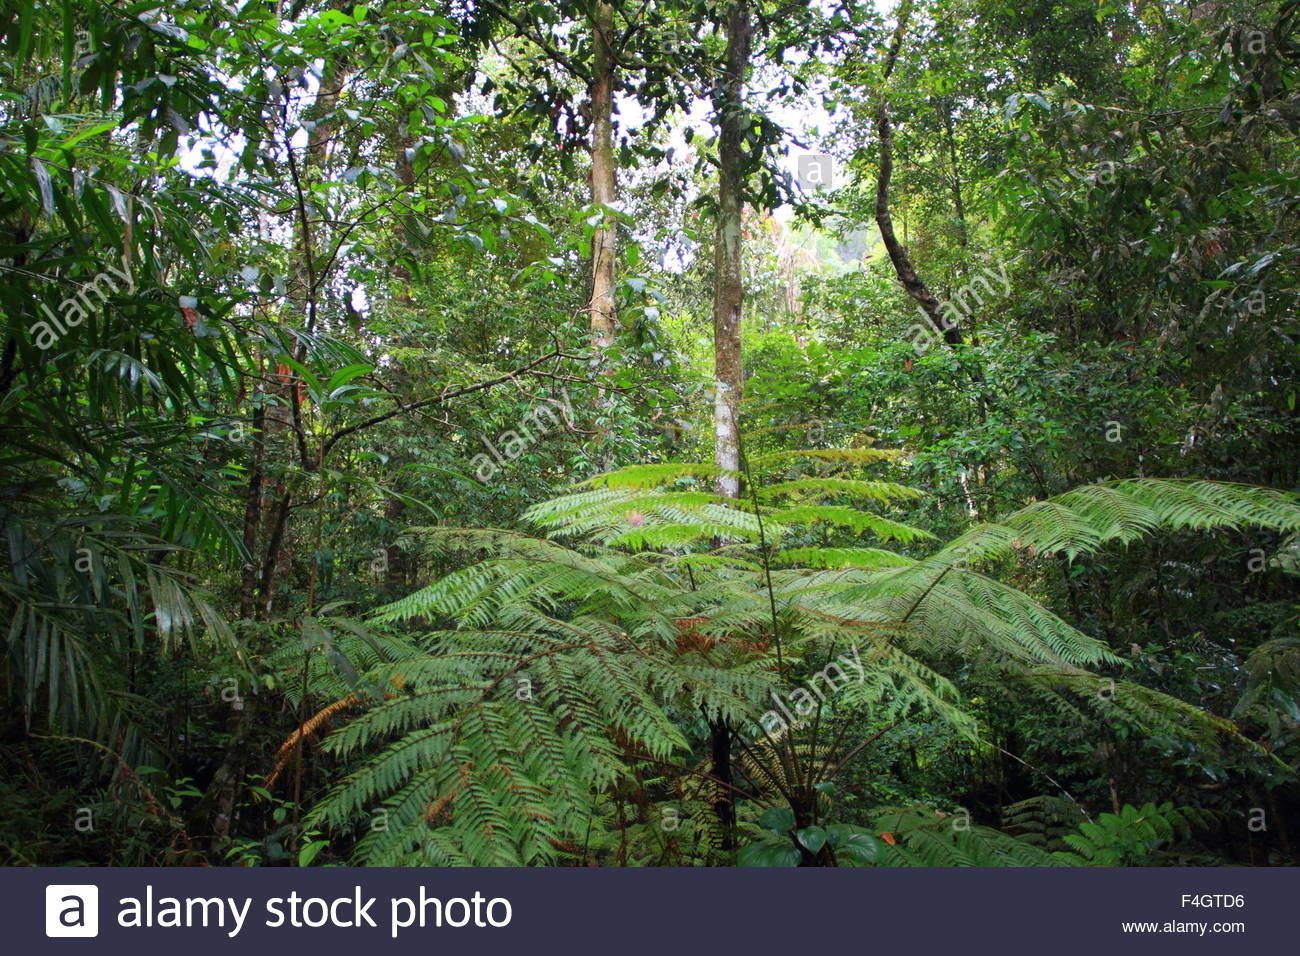 Sinharaja Forest Reserve Sinharaja Forest Reserve, Sinharaja Forest Reserve in Sri Lanka Stock Photo, Royalty Free ...